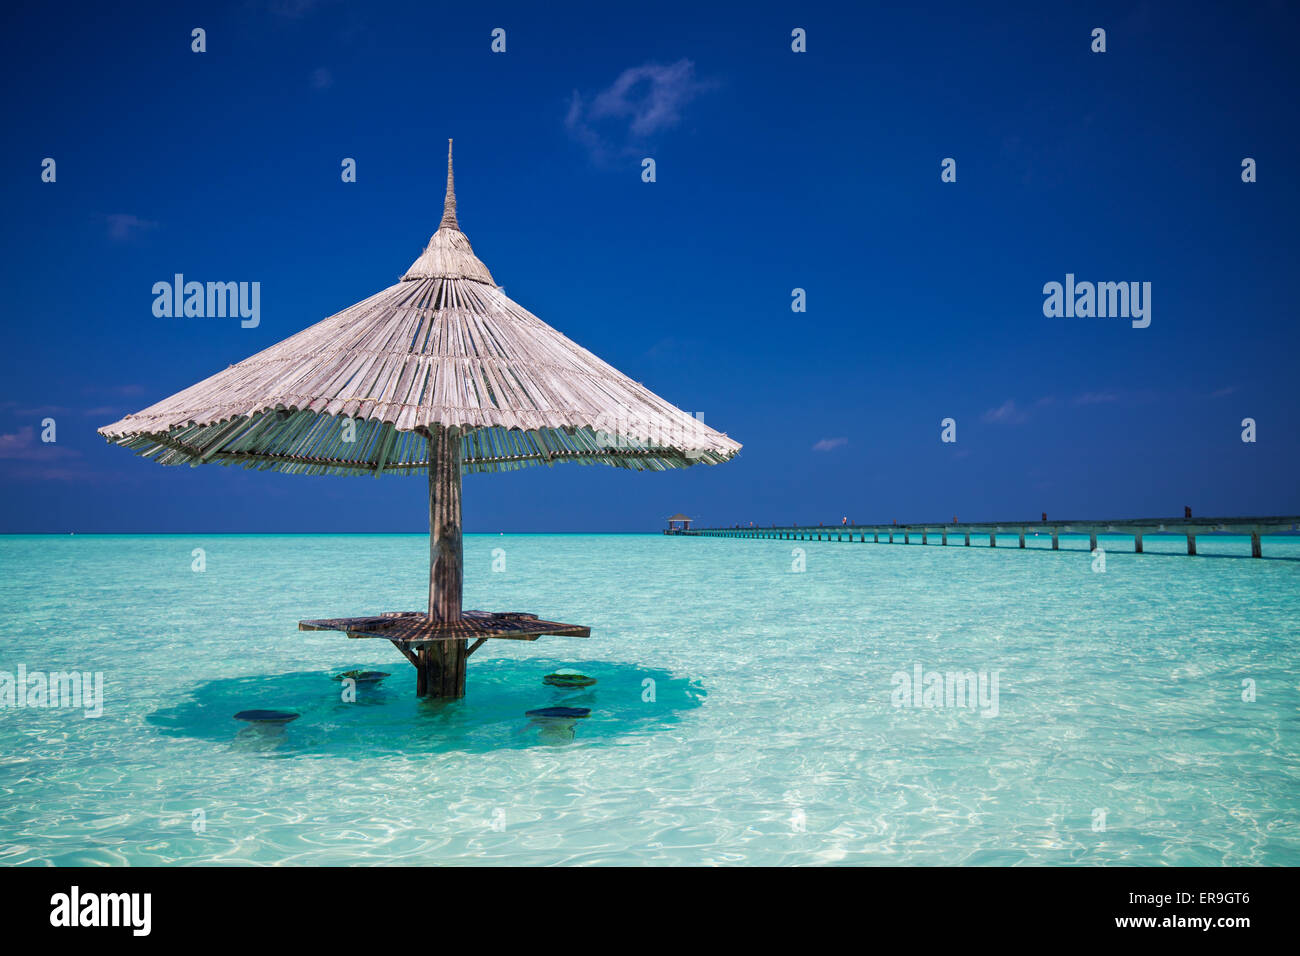 Bamboo beach umbrella with bar seats in the water at Maldives - Stock Image